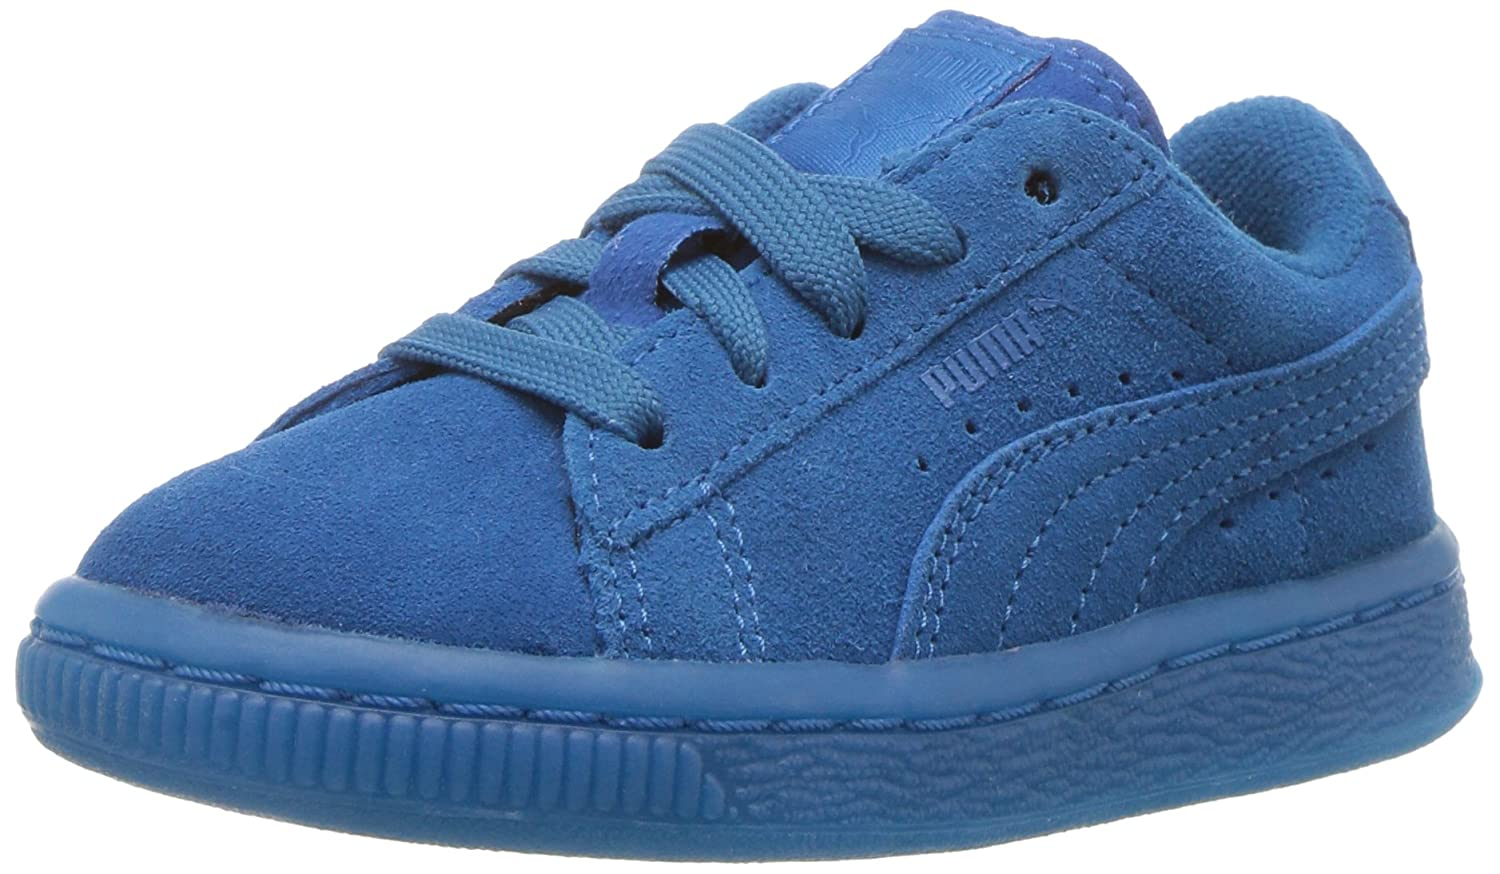 finest selection 8aae4 0f828 PUMA Suede Iced Kids Sneaker